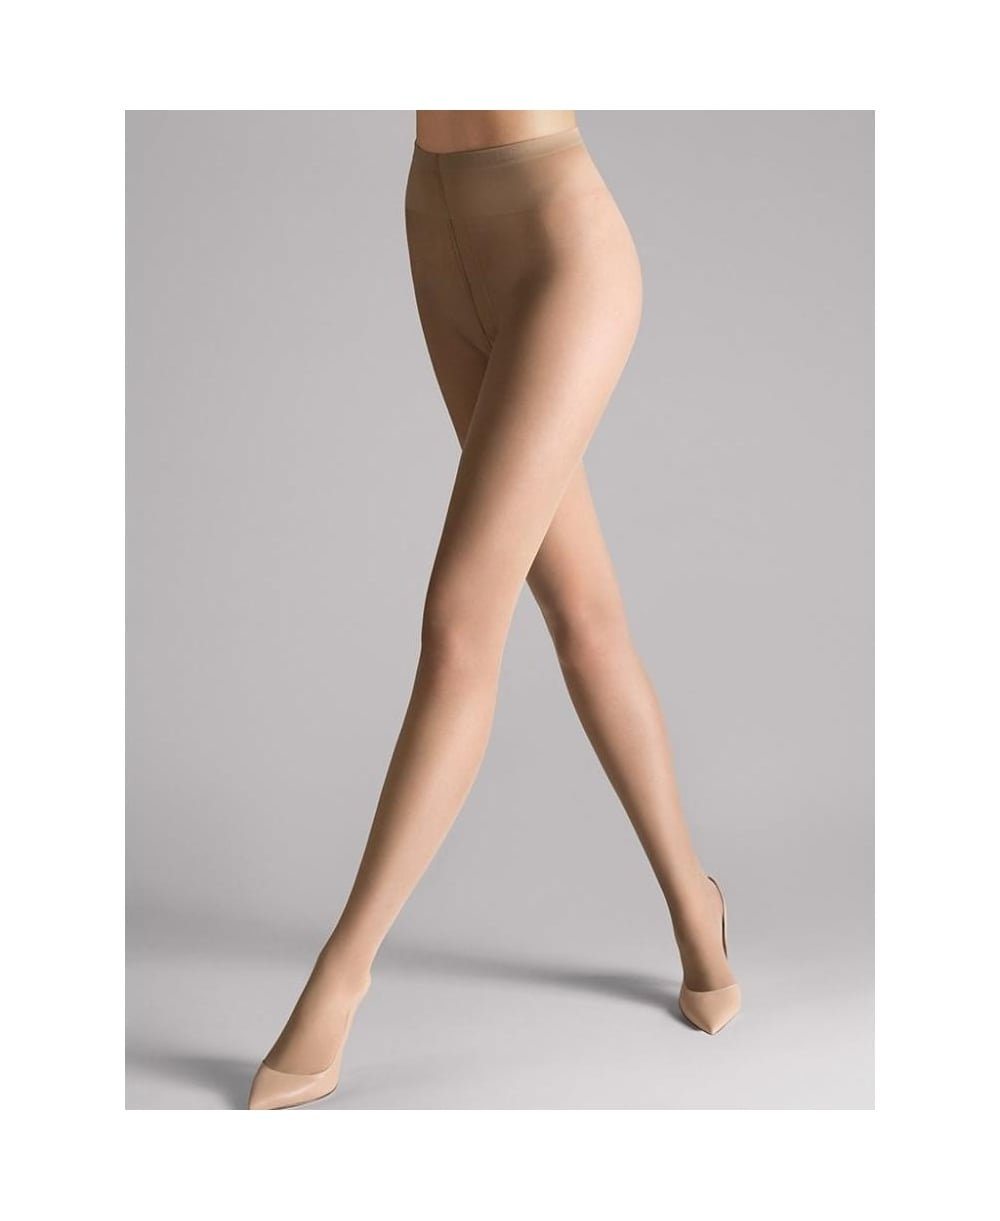 15965b4f5cc7cb Wolford Individual 20 Tights - Tights from luxury-legs.com UK